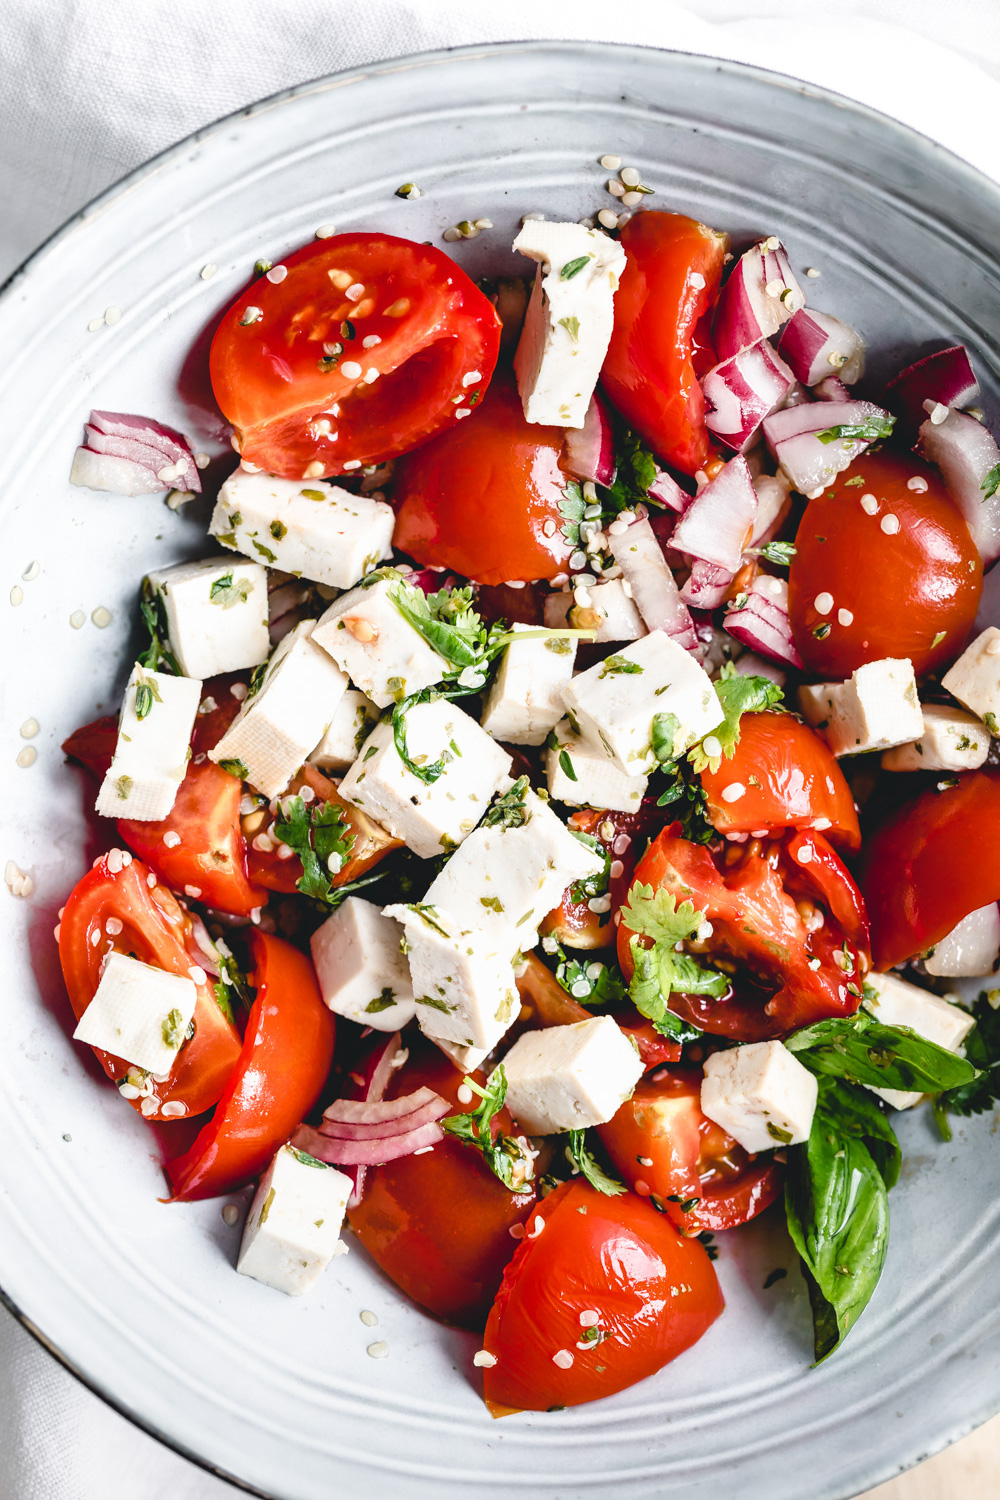 feta cheese in tomato salad close up